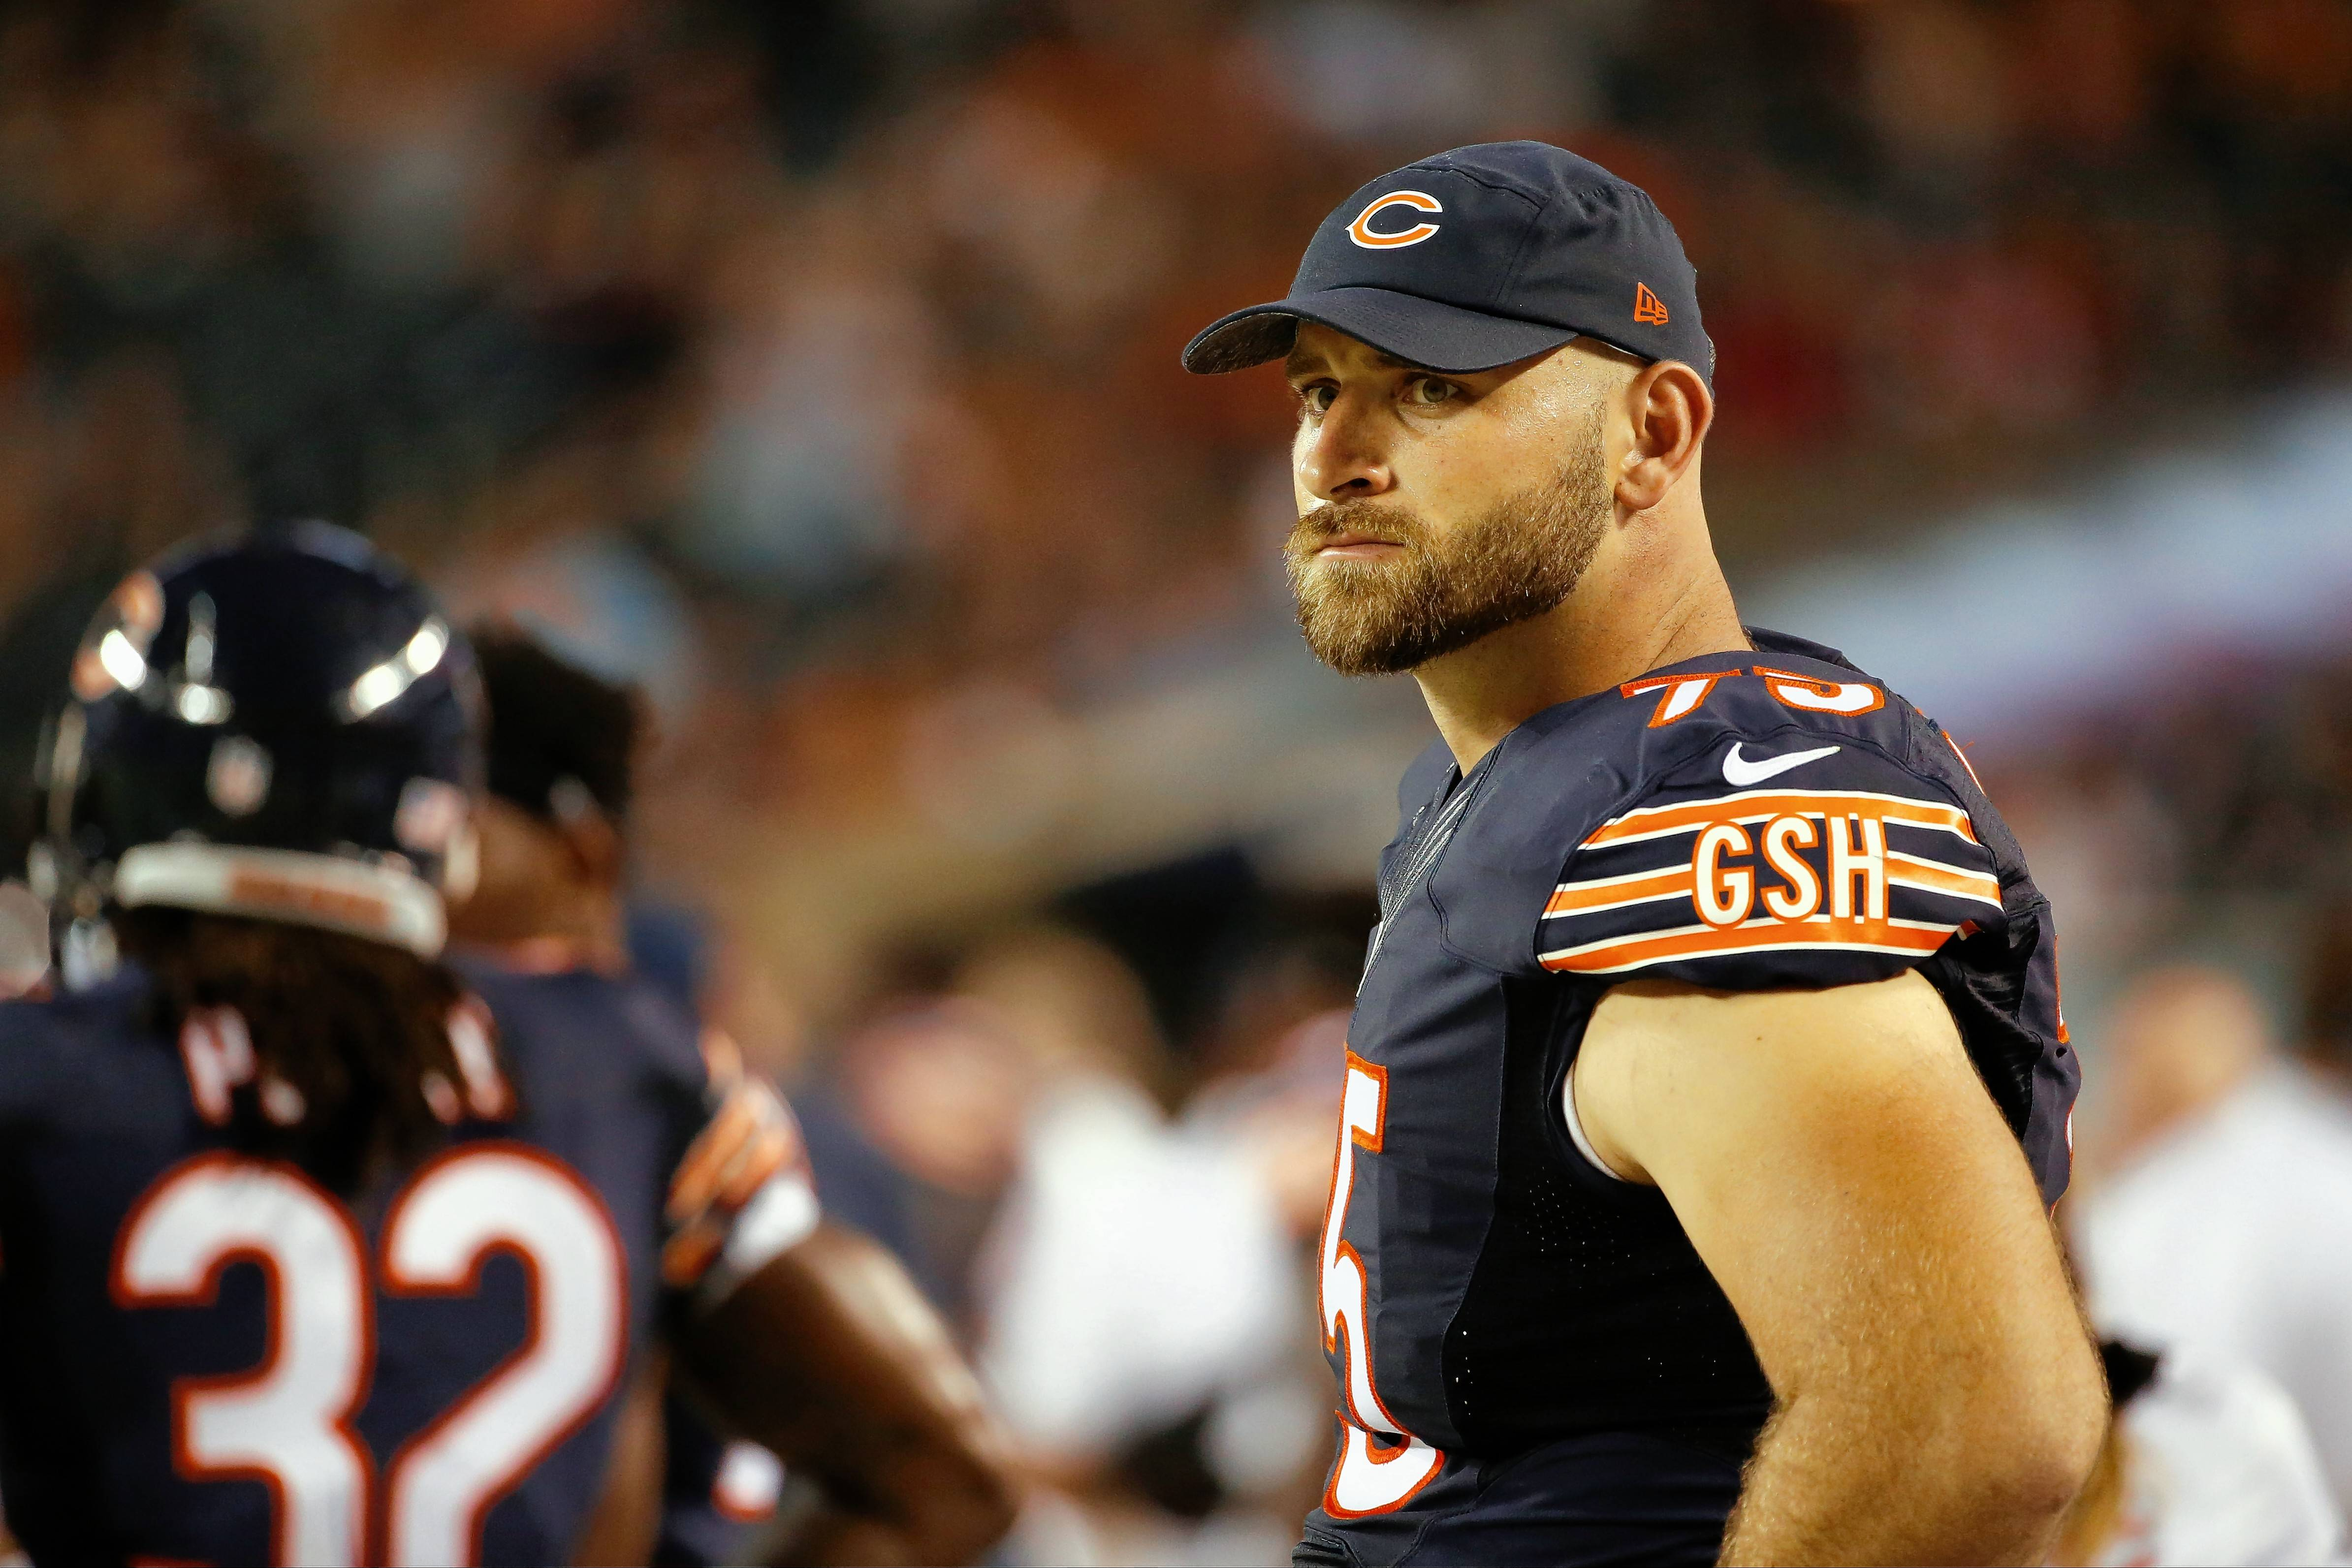 Last season was the first time in his NFL career that Kyle Long missed multiple games due to injuries. He's still recovering from ankle surgery.